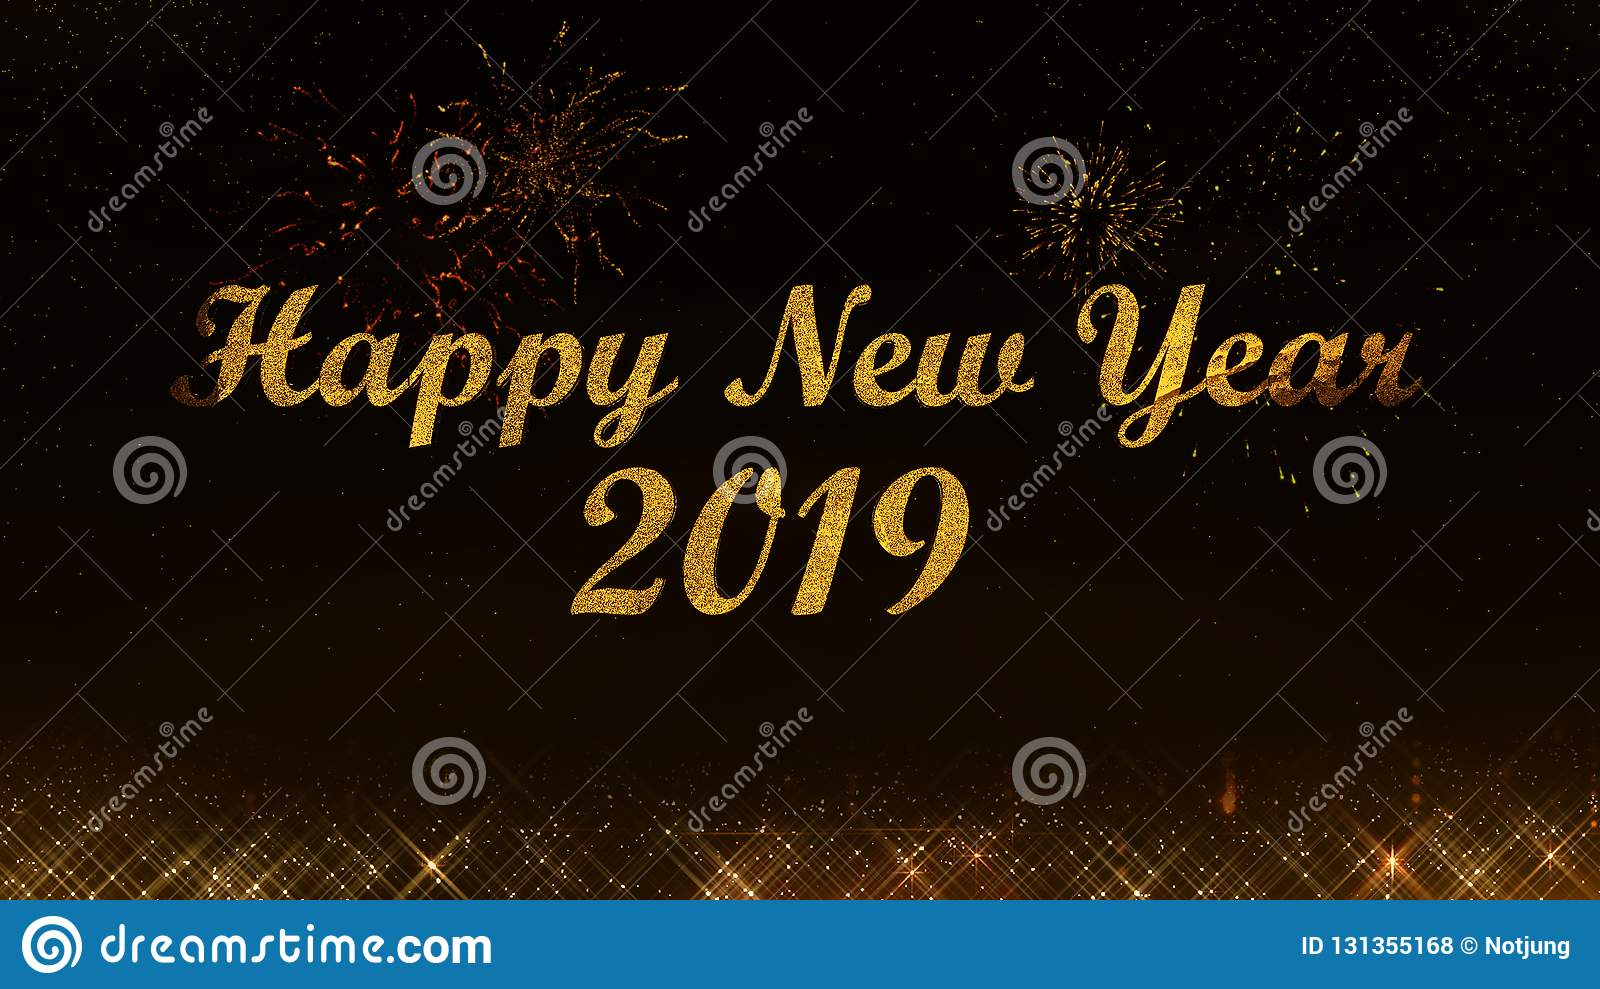 merry christmas and happy new year 2019 golden light shine particles black background